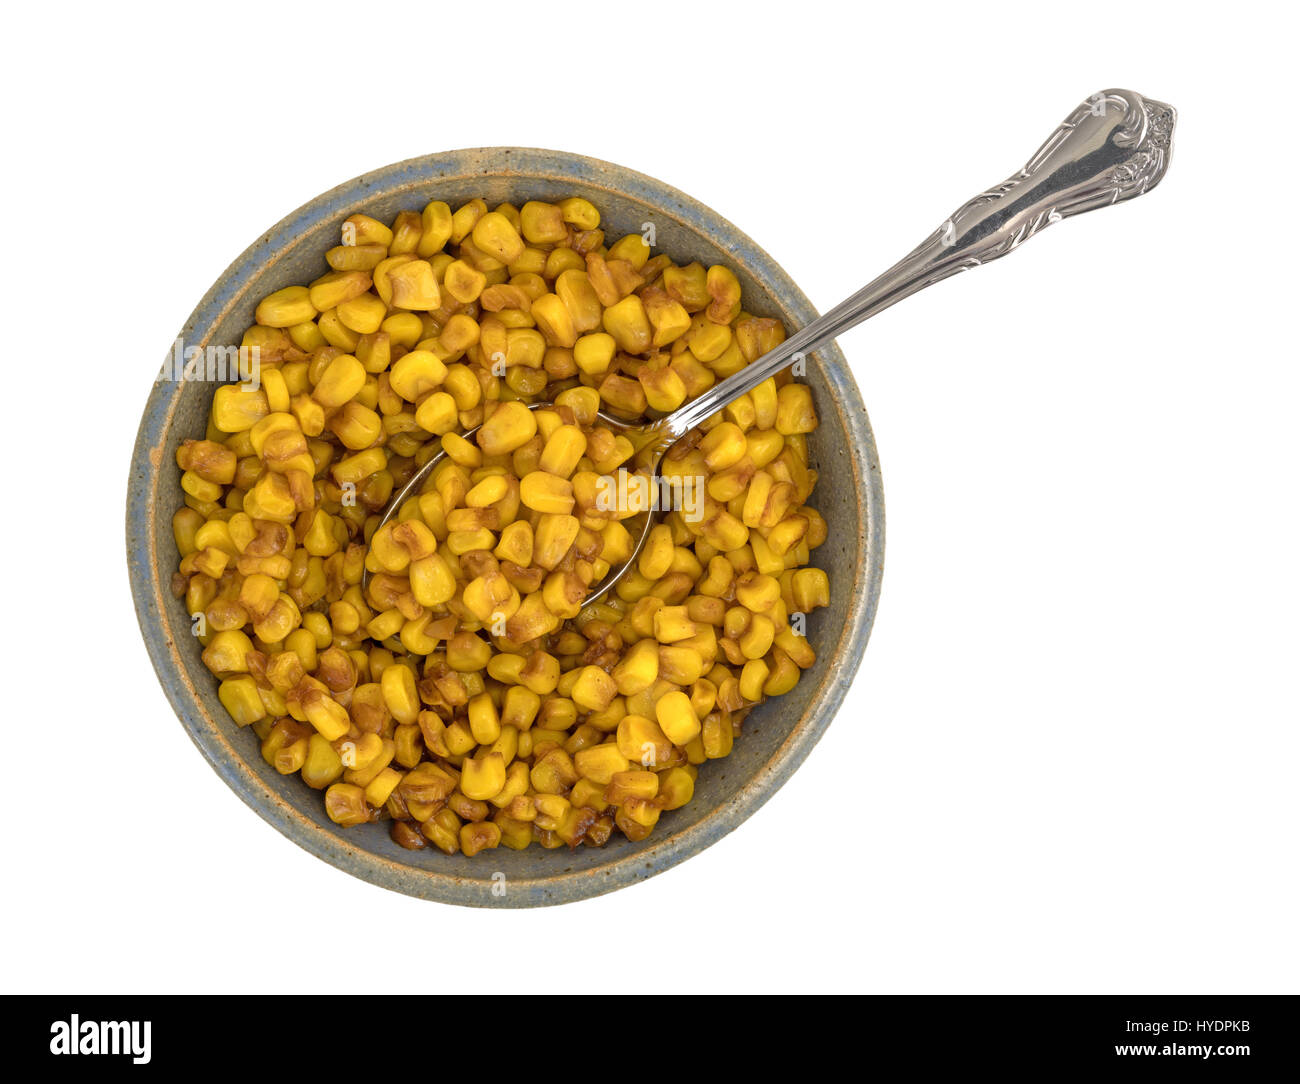 Top view of an old stoneware bowl filled with barbecue flavored cut corn and a spoon in the food isolated on a white - Stock Image